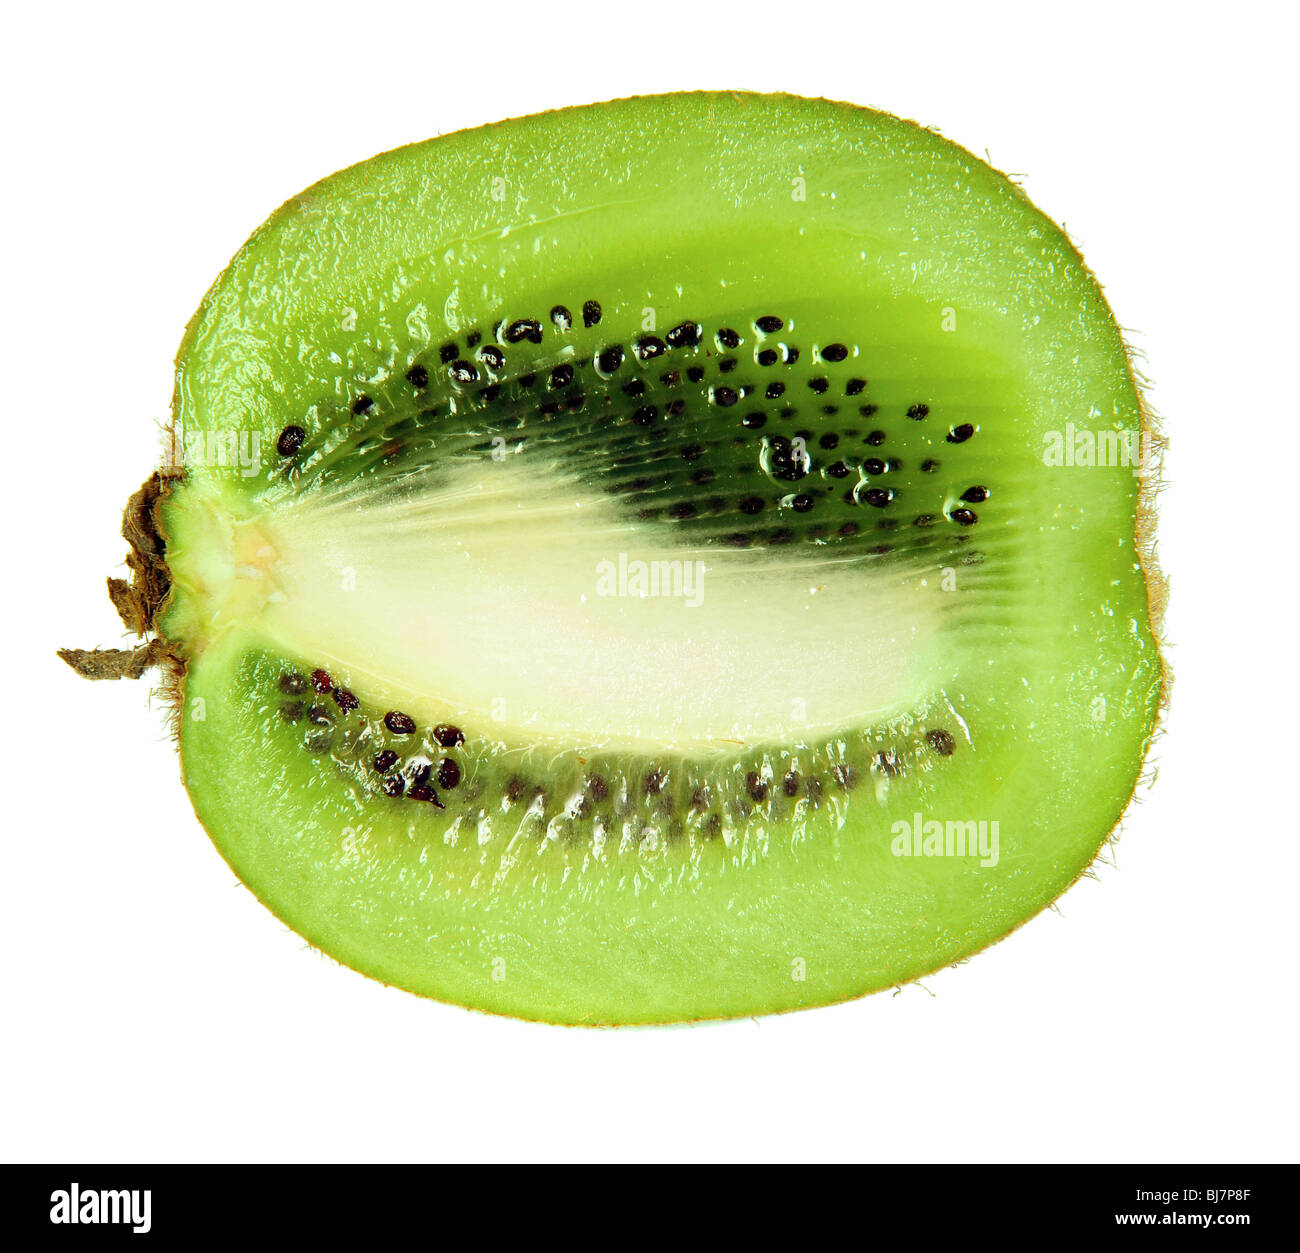 Slice of kiwi fruit isolated on white - Stock Image